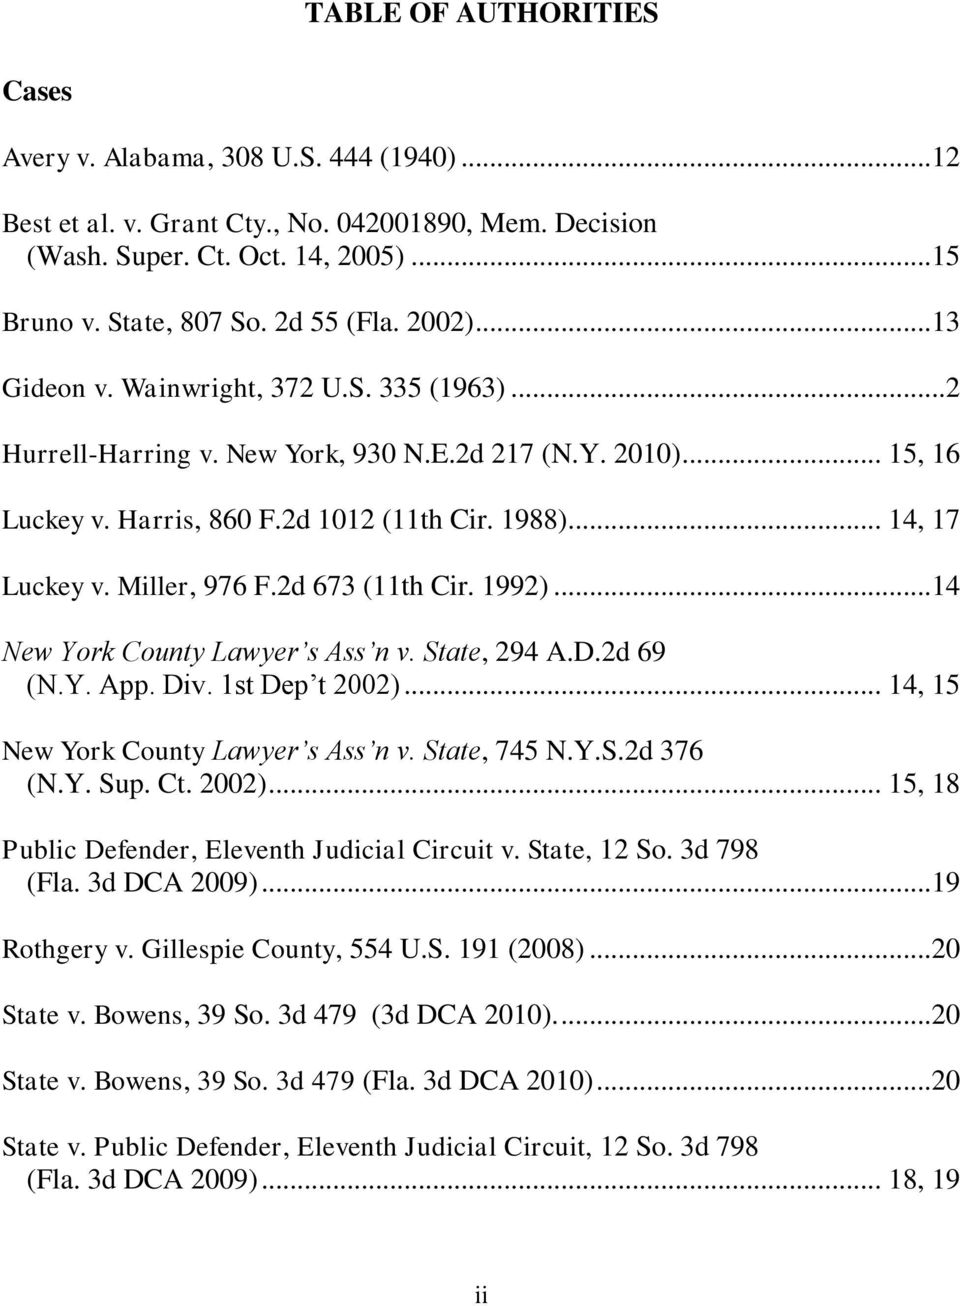 Miller, 976 F.2d 673 (11th Cir. 1992)...14 New York County Lawyer s Ass n v. State, 294 A.D.2d 69 (N.Y. App. Div. 1st Dep t 2002)... 14, 15 New York County Lawyer s Ass n v. State, 745 N.Y.S.2d 376 (N.